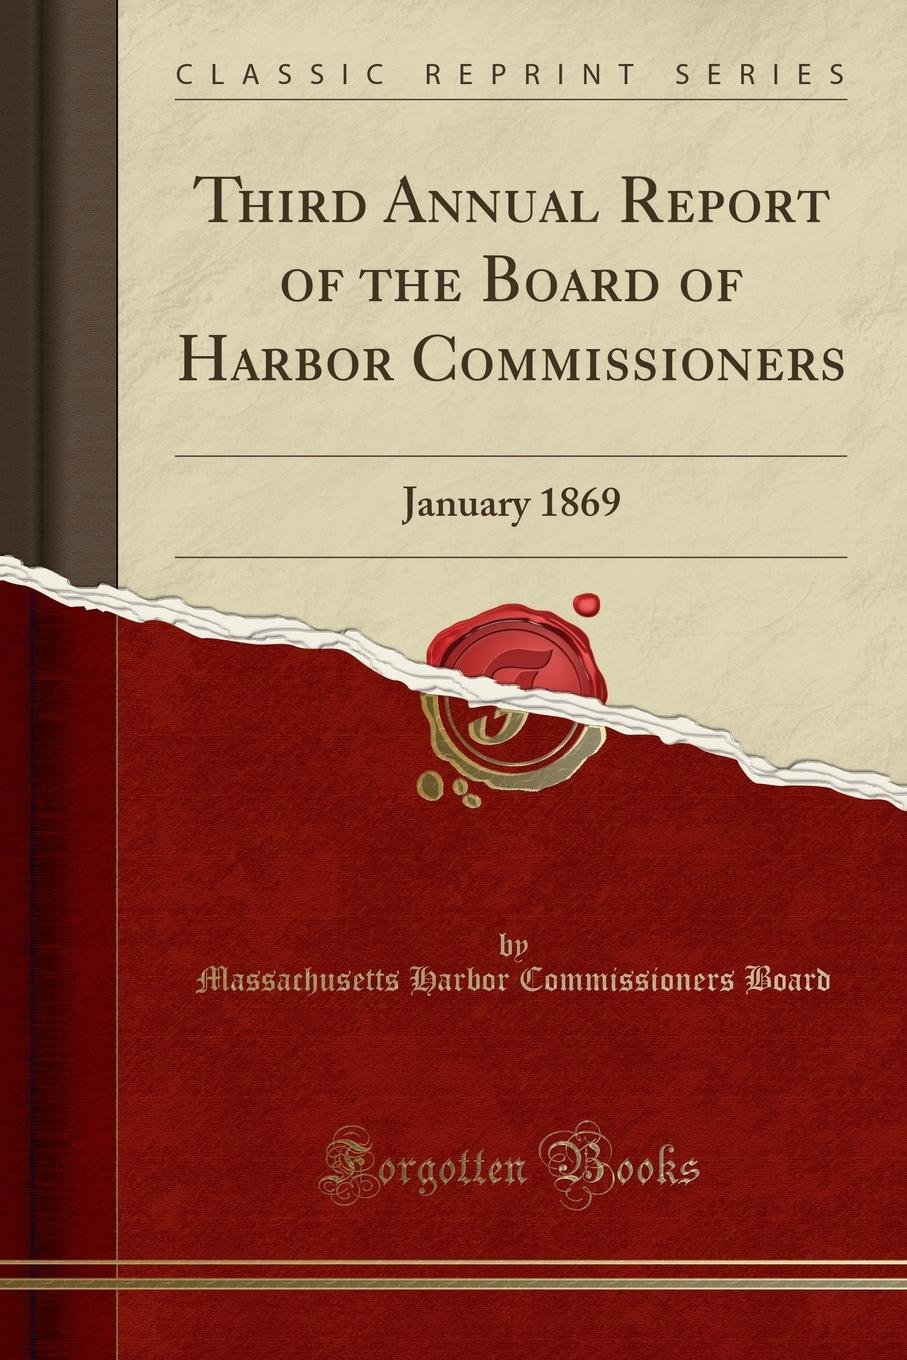 Download Third Annual Report of the Board of Harbor Commissioners: January 1869 (Classic Reprint) PDF